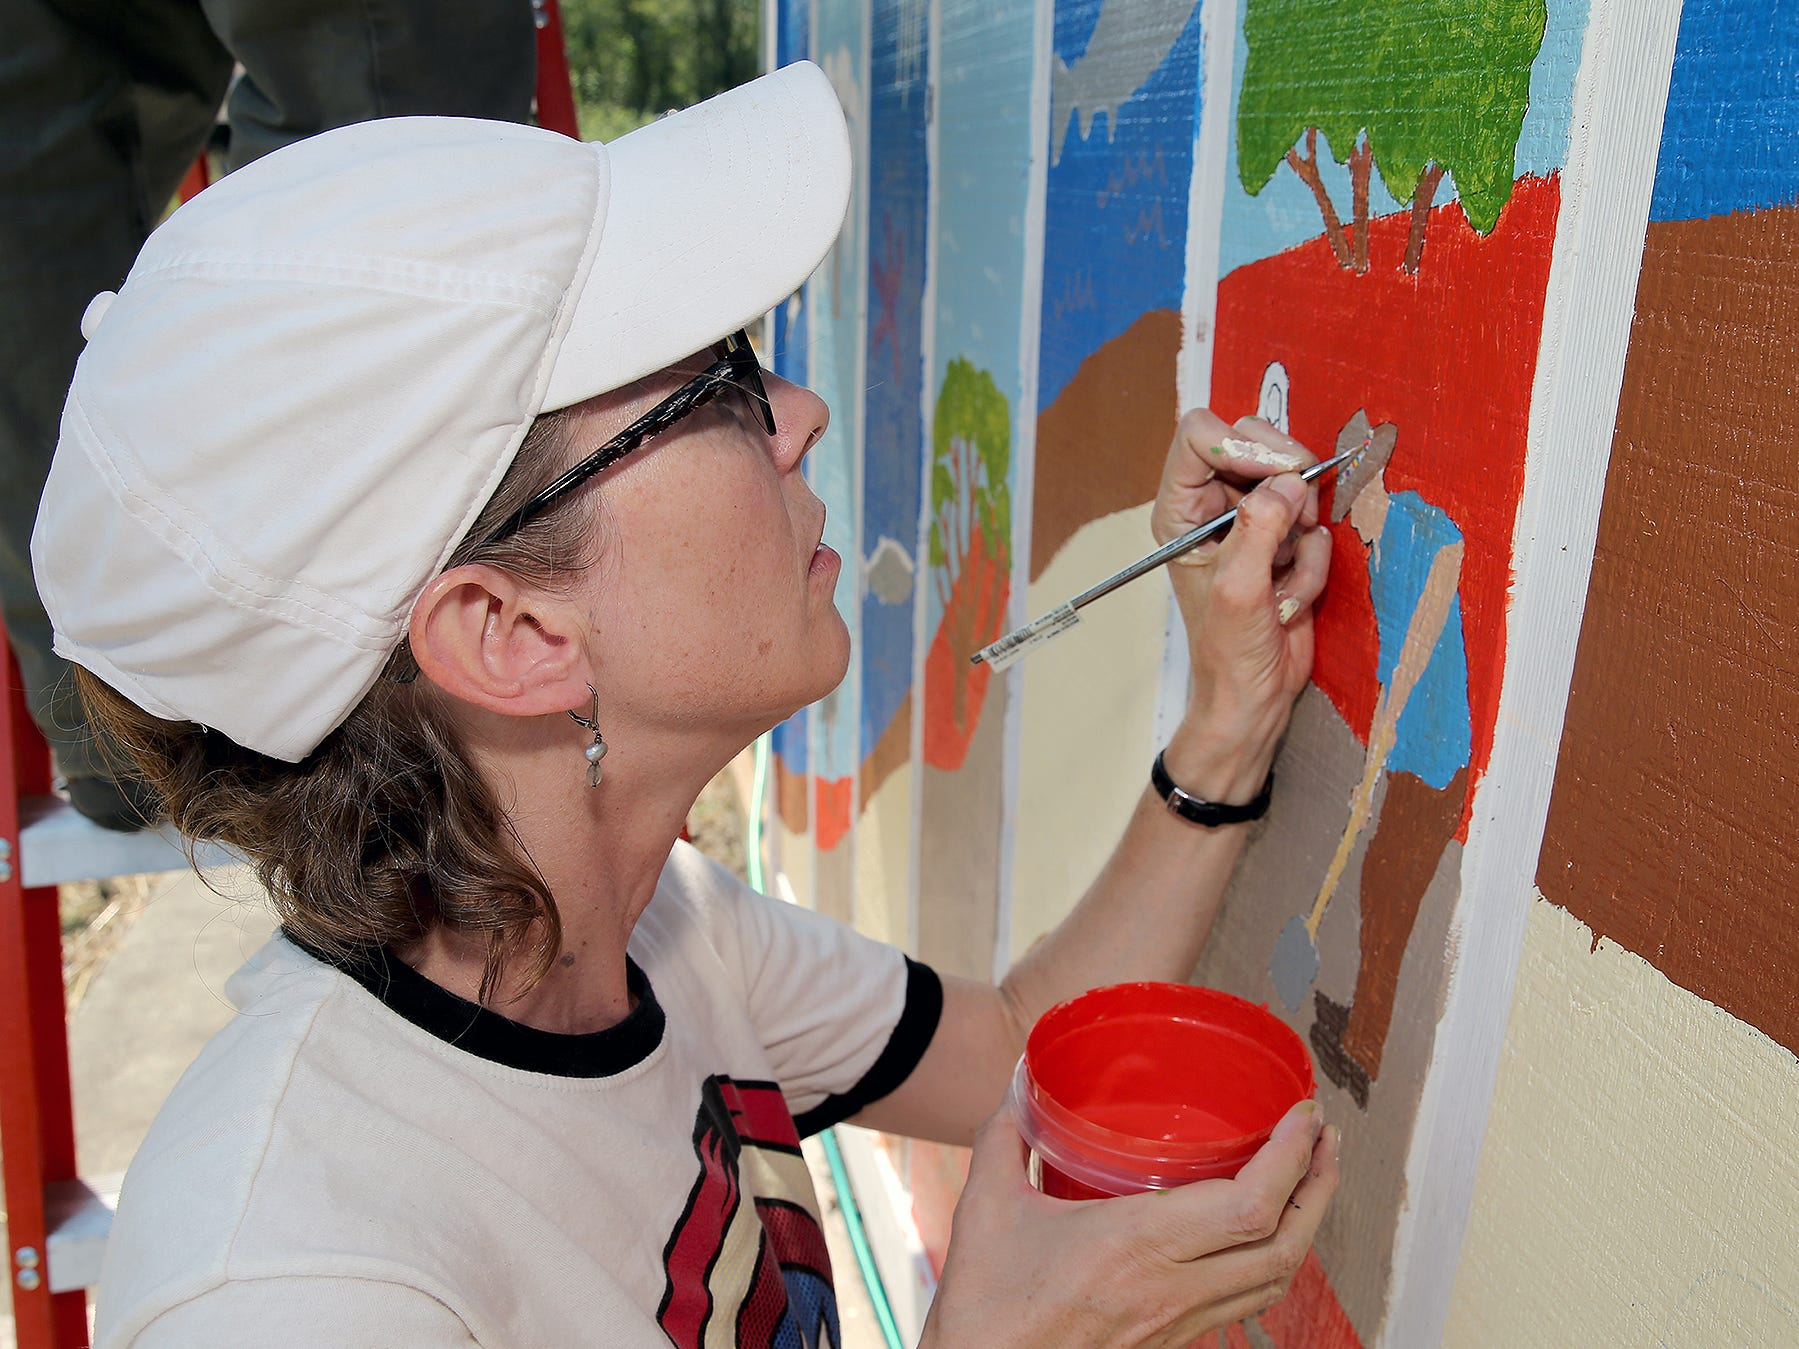 Mural artist Erica Applewhite of Poulsbo touches up the hat band colors to an image she designed of Clear Creek task Force legendary member Tex Lewis on the nature mural on Wednesday August 8, 2018.